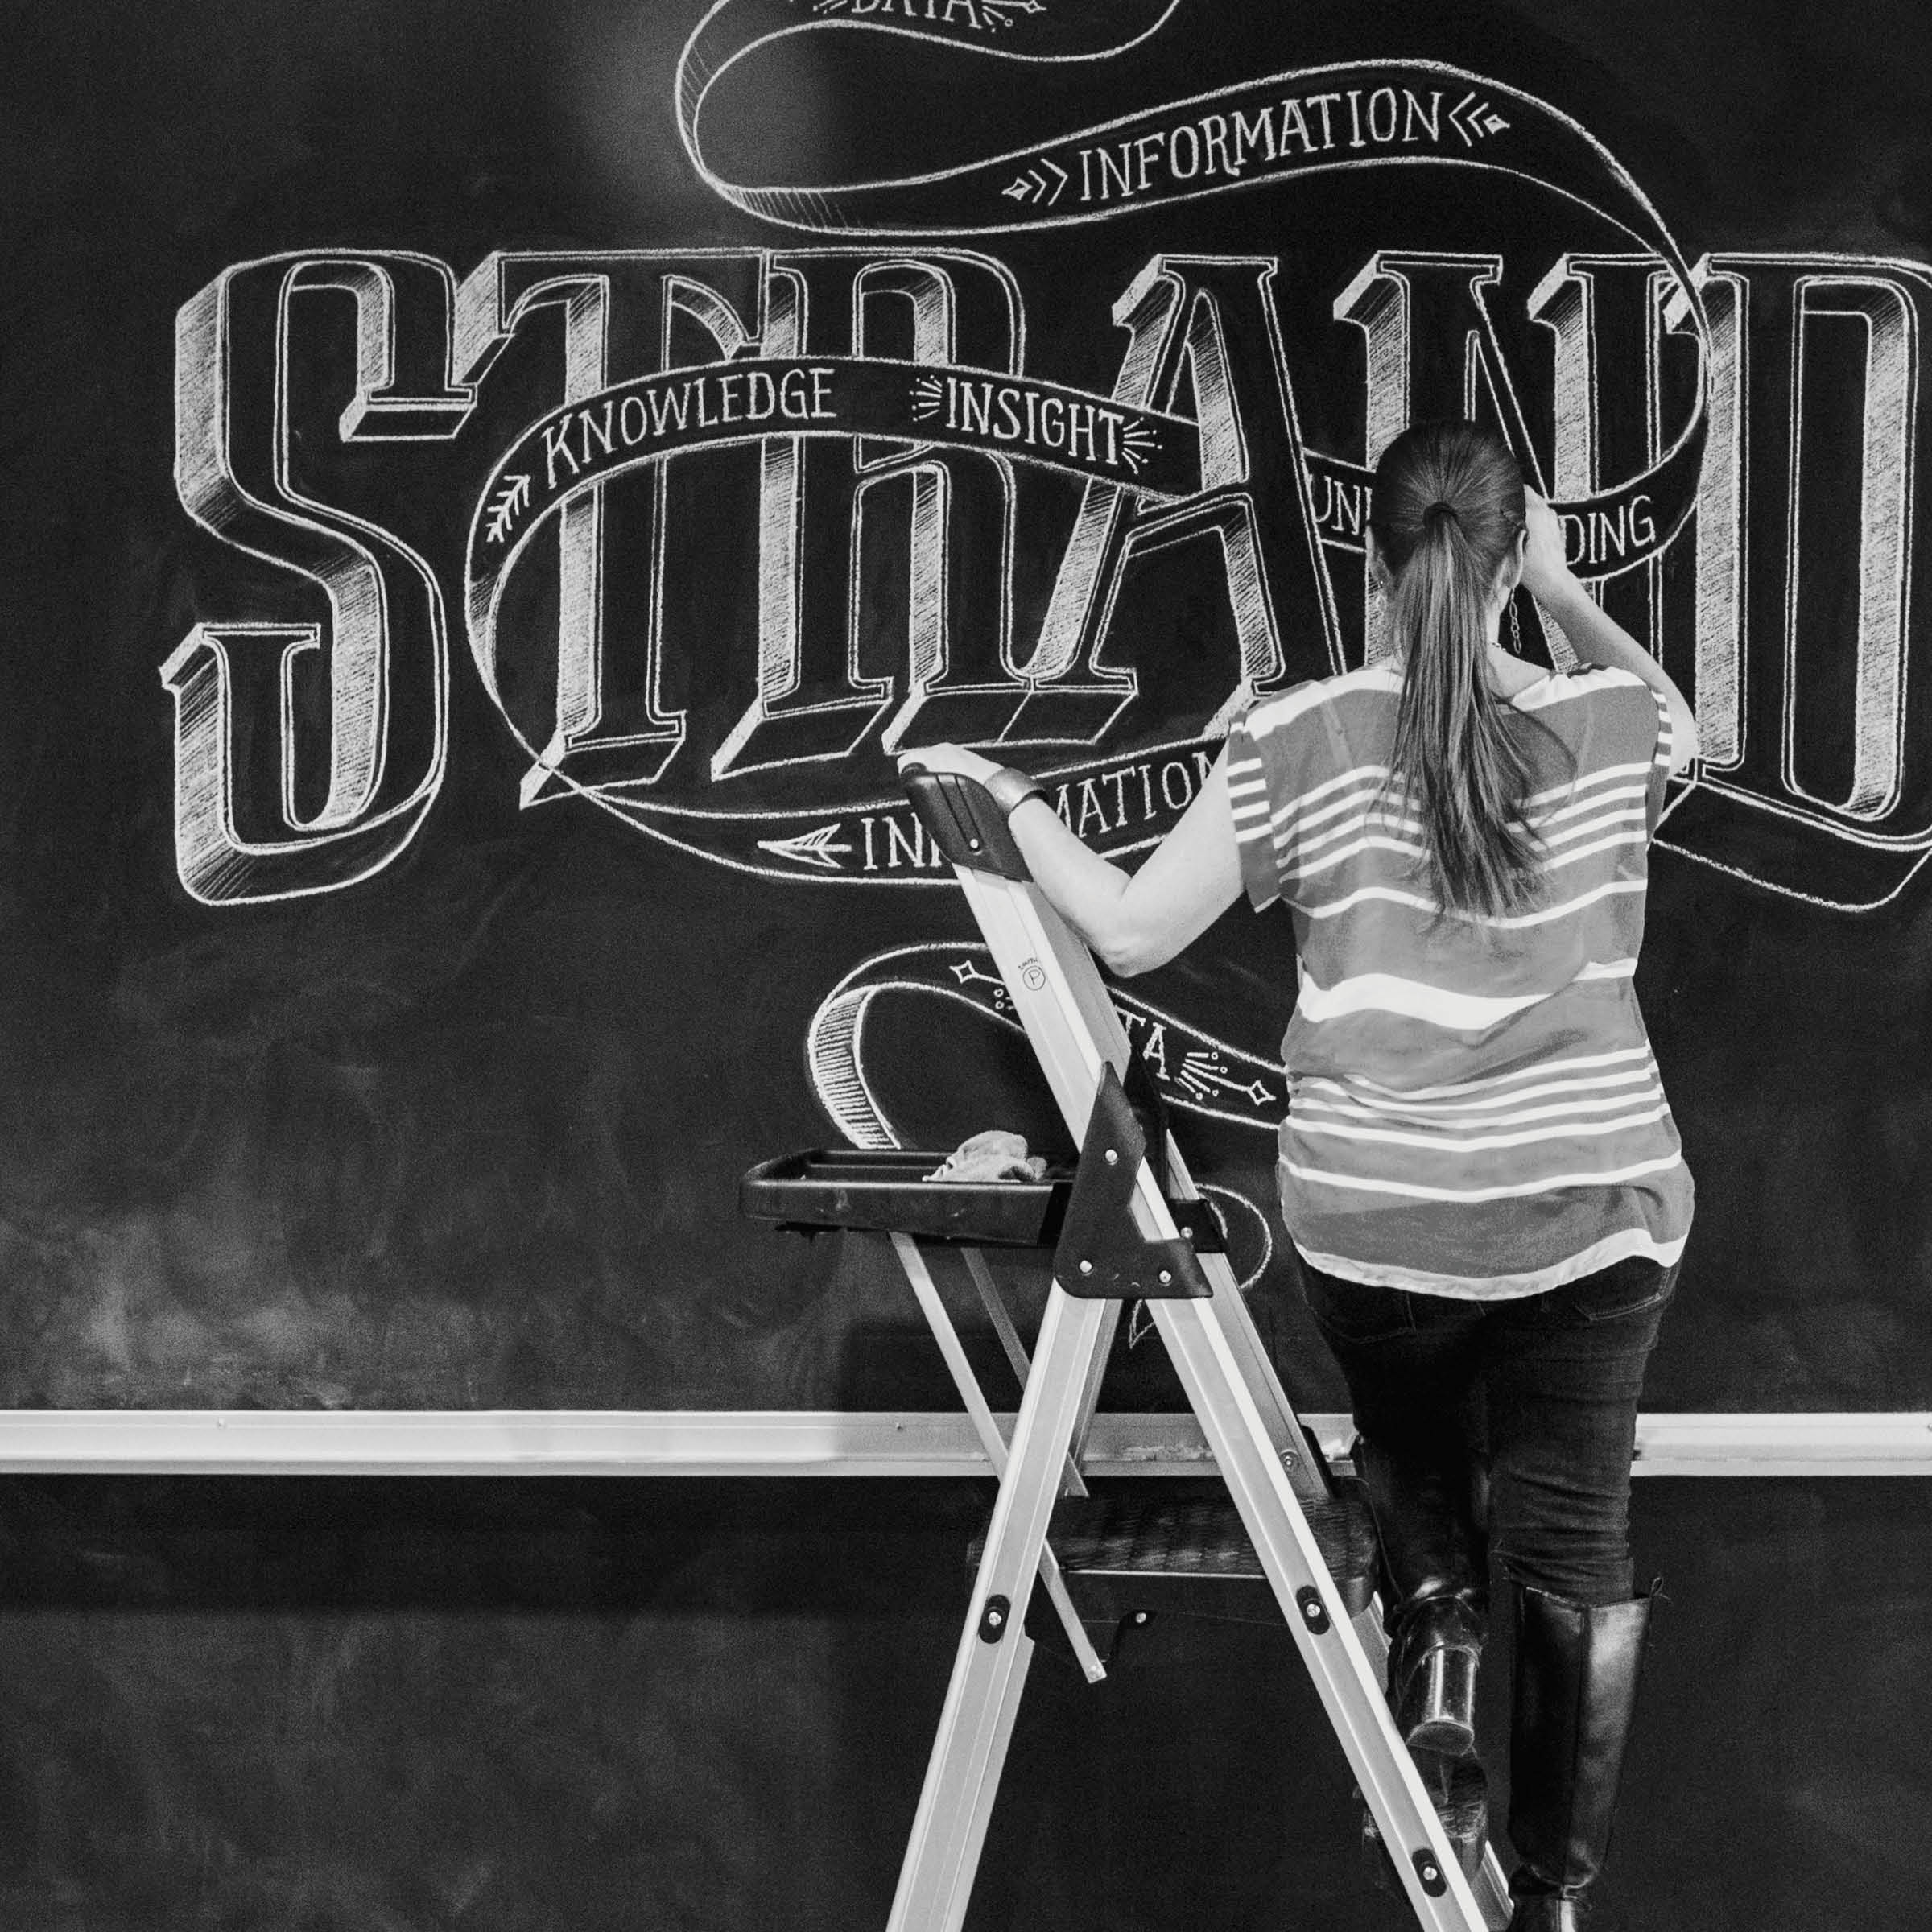 Chalk Mural Installation at GTB   We worked on-site to create a 50-foot chalk wall installation in the lobby of Detroit-based GTB (Global Team Blue). The mural contained three typography-based compositions inspired by content that they provided.